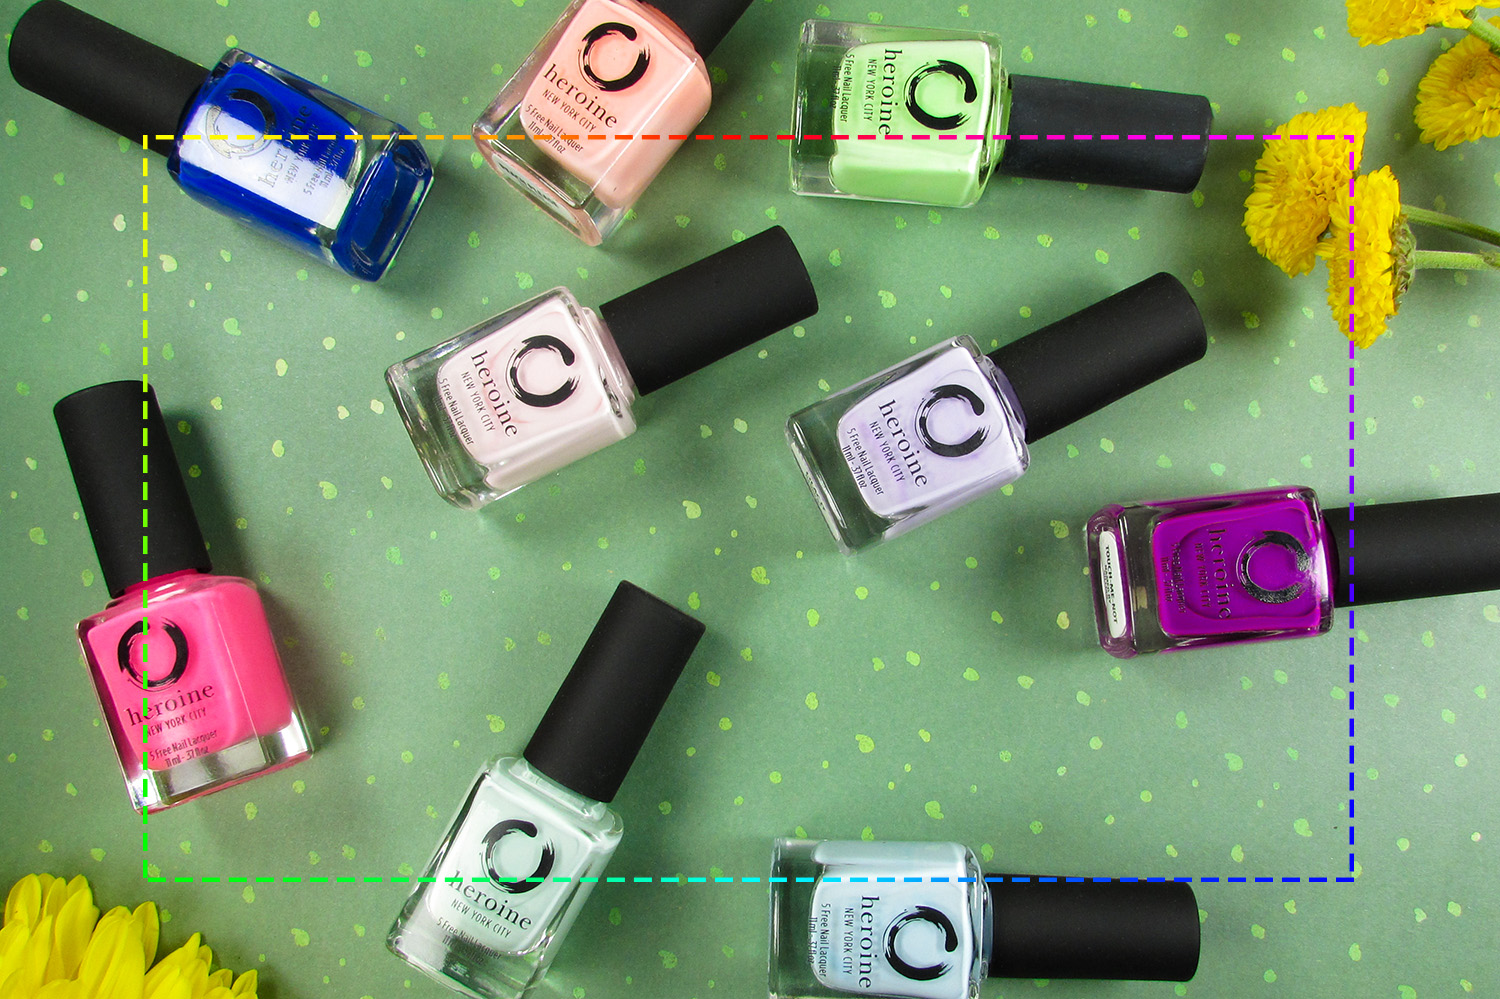 Heroine NYC The Dream Creme and The Neons